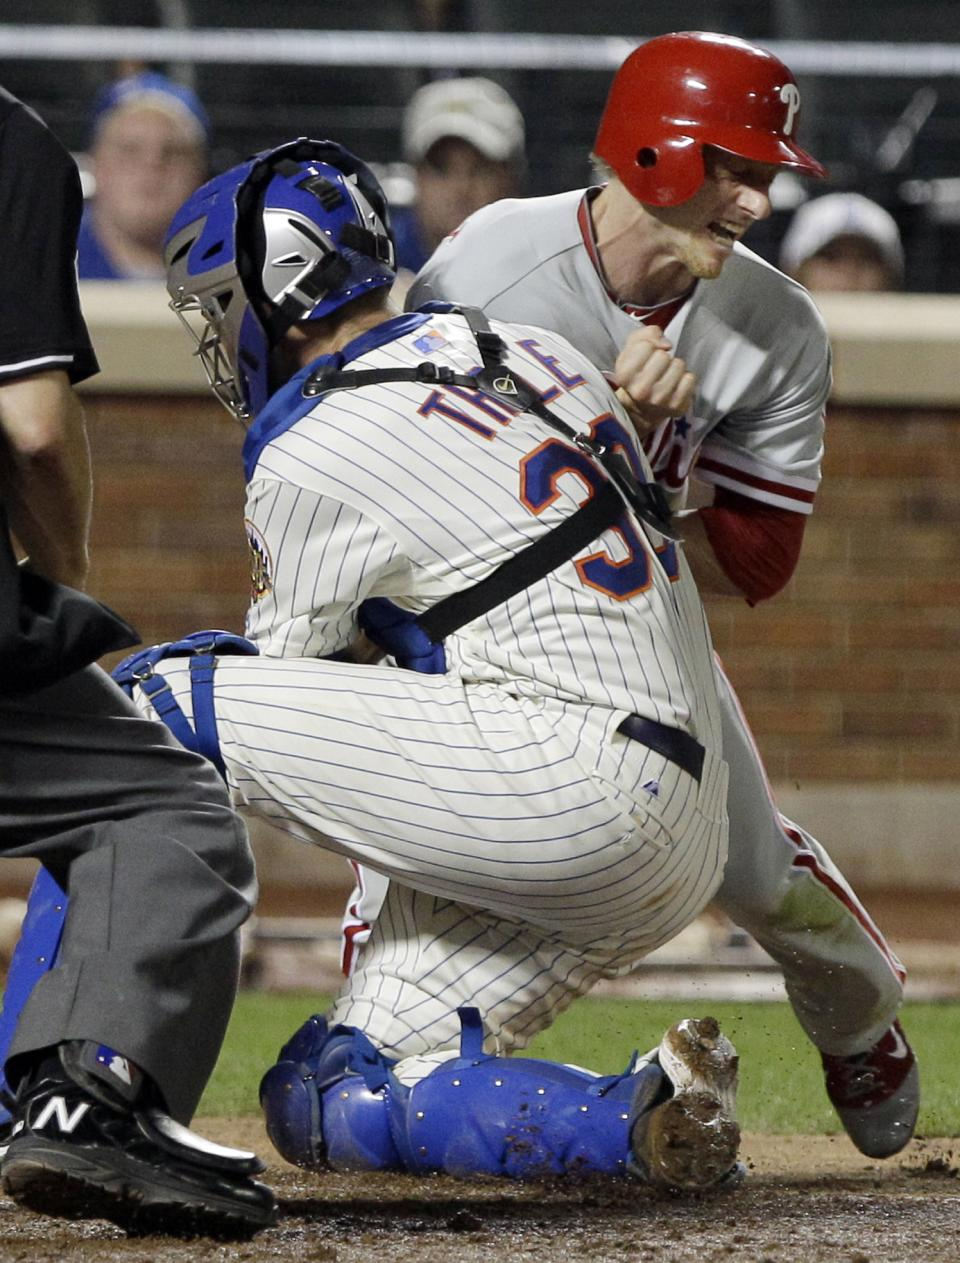 Philadelphia Phillies' Mike Fontenot is tagged out at home plate by New York Mets catcher Josh Thole during the eighth inning of a baseball game, Thursday, July 5, 2012, in New York. (AP Photo/Frank Franklin II)